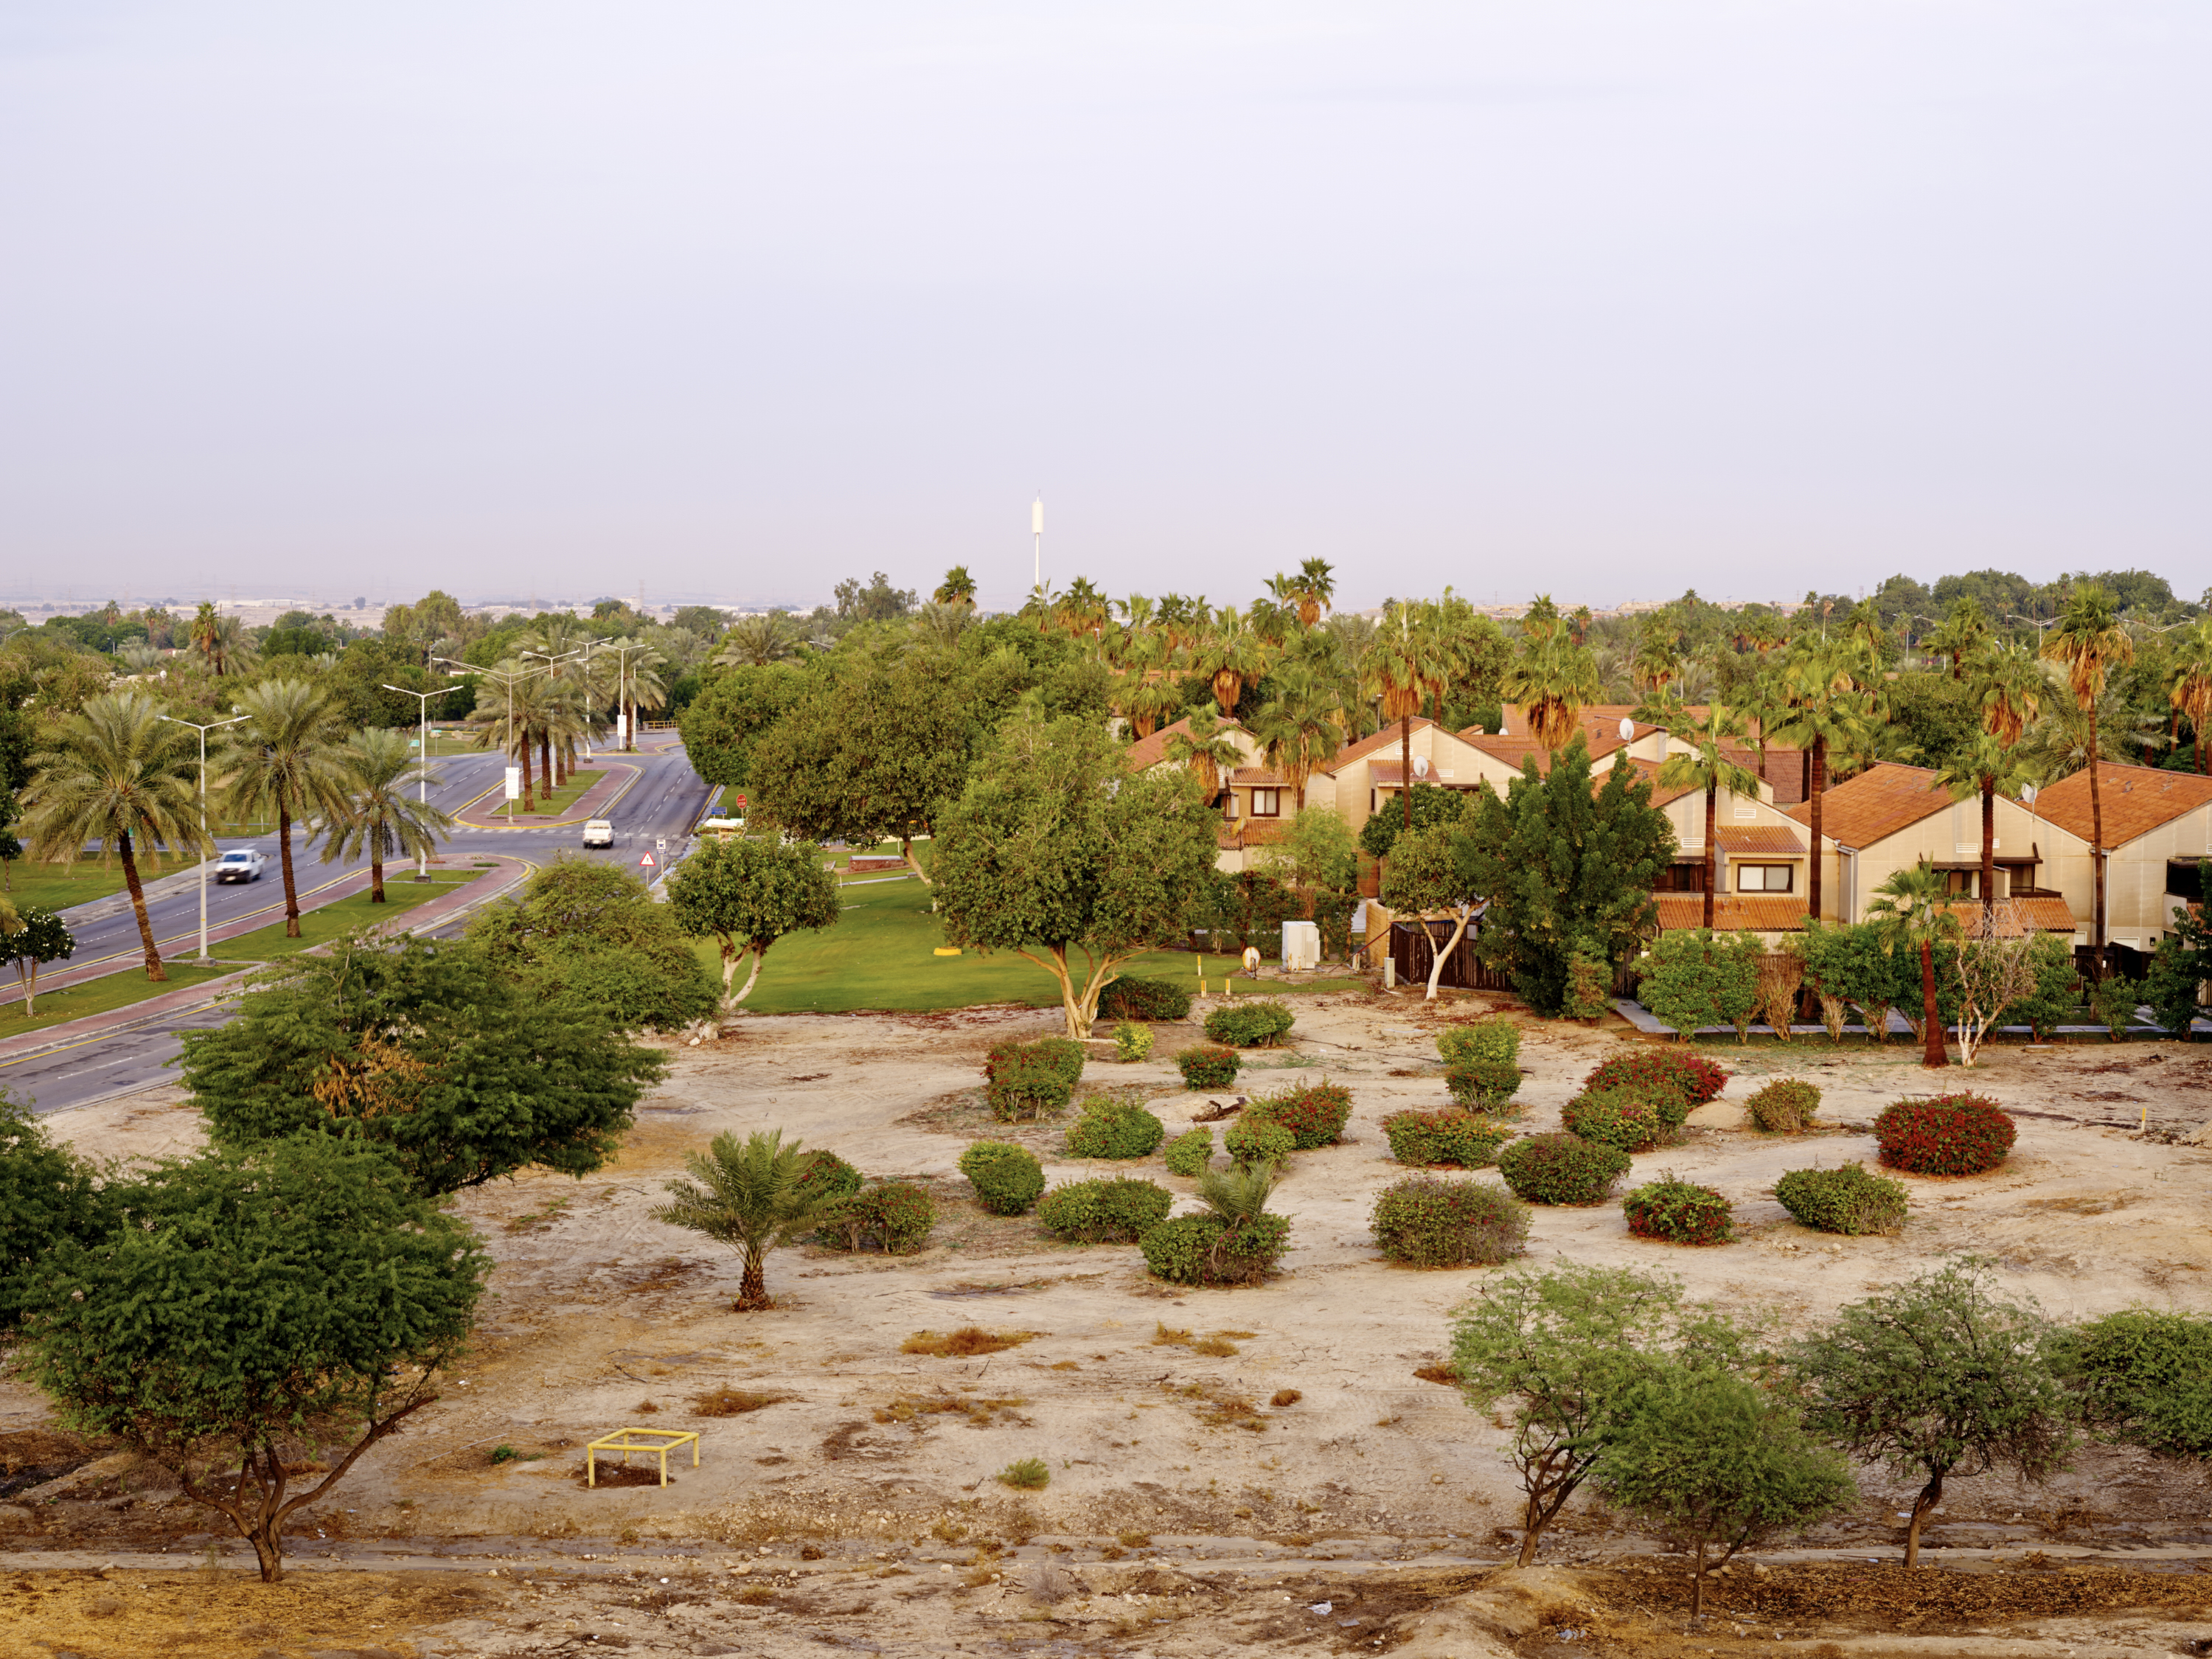 Dhahran Hills in the Residential Compound of Dhahran, Operated by Saudi Aramco.